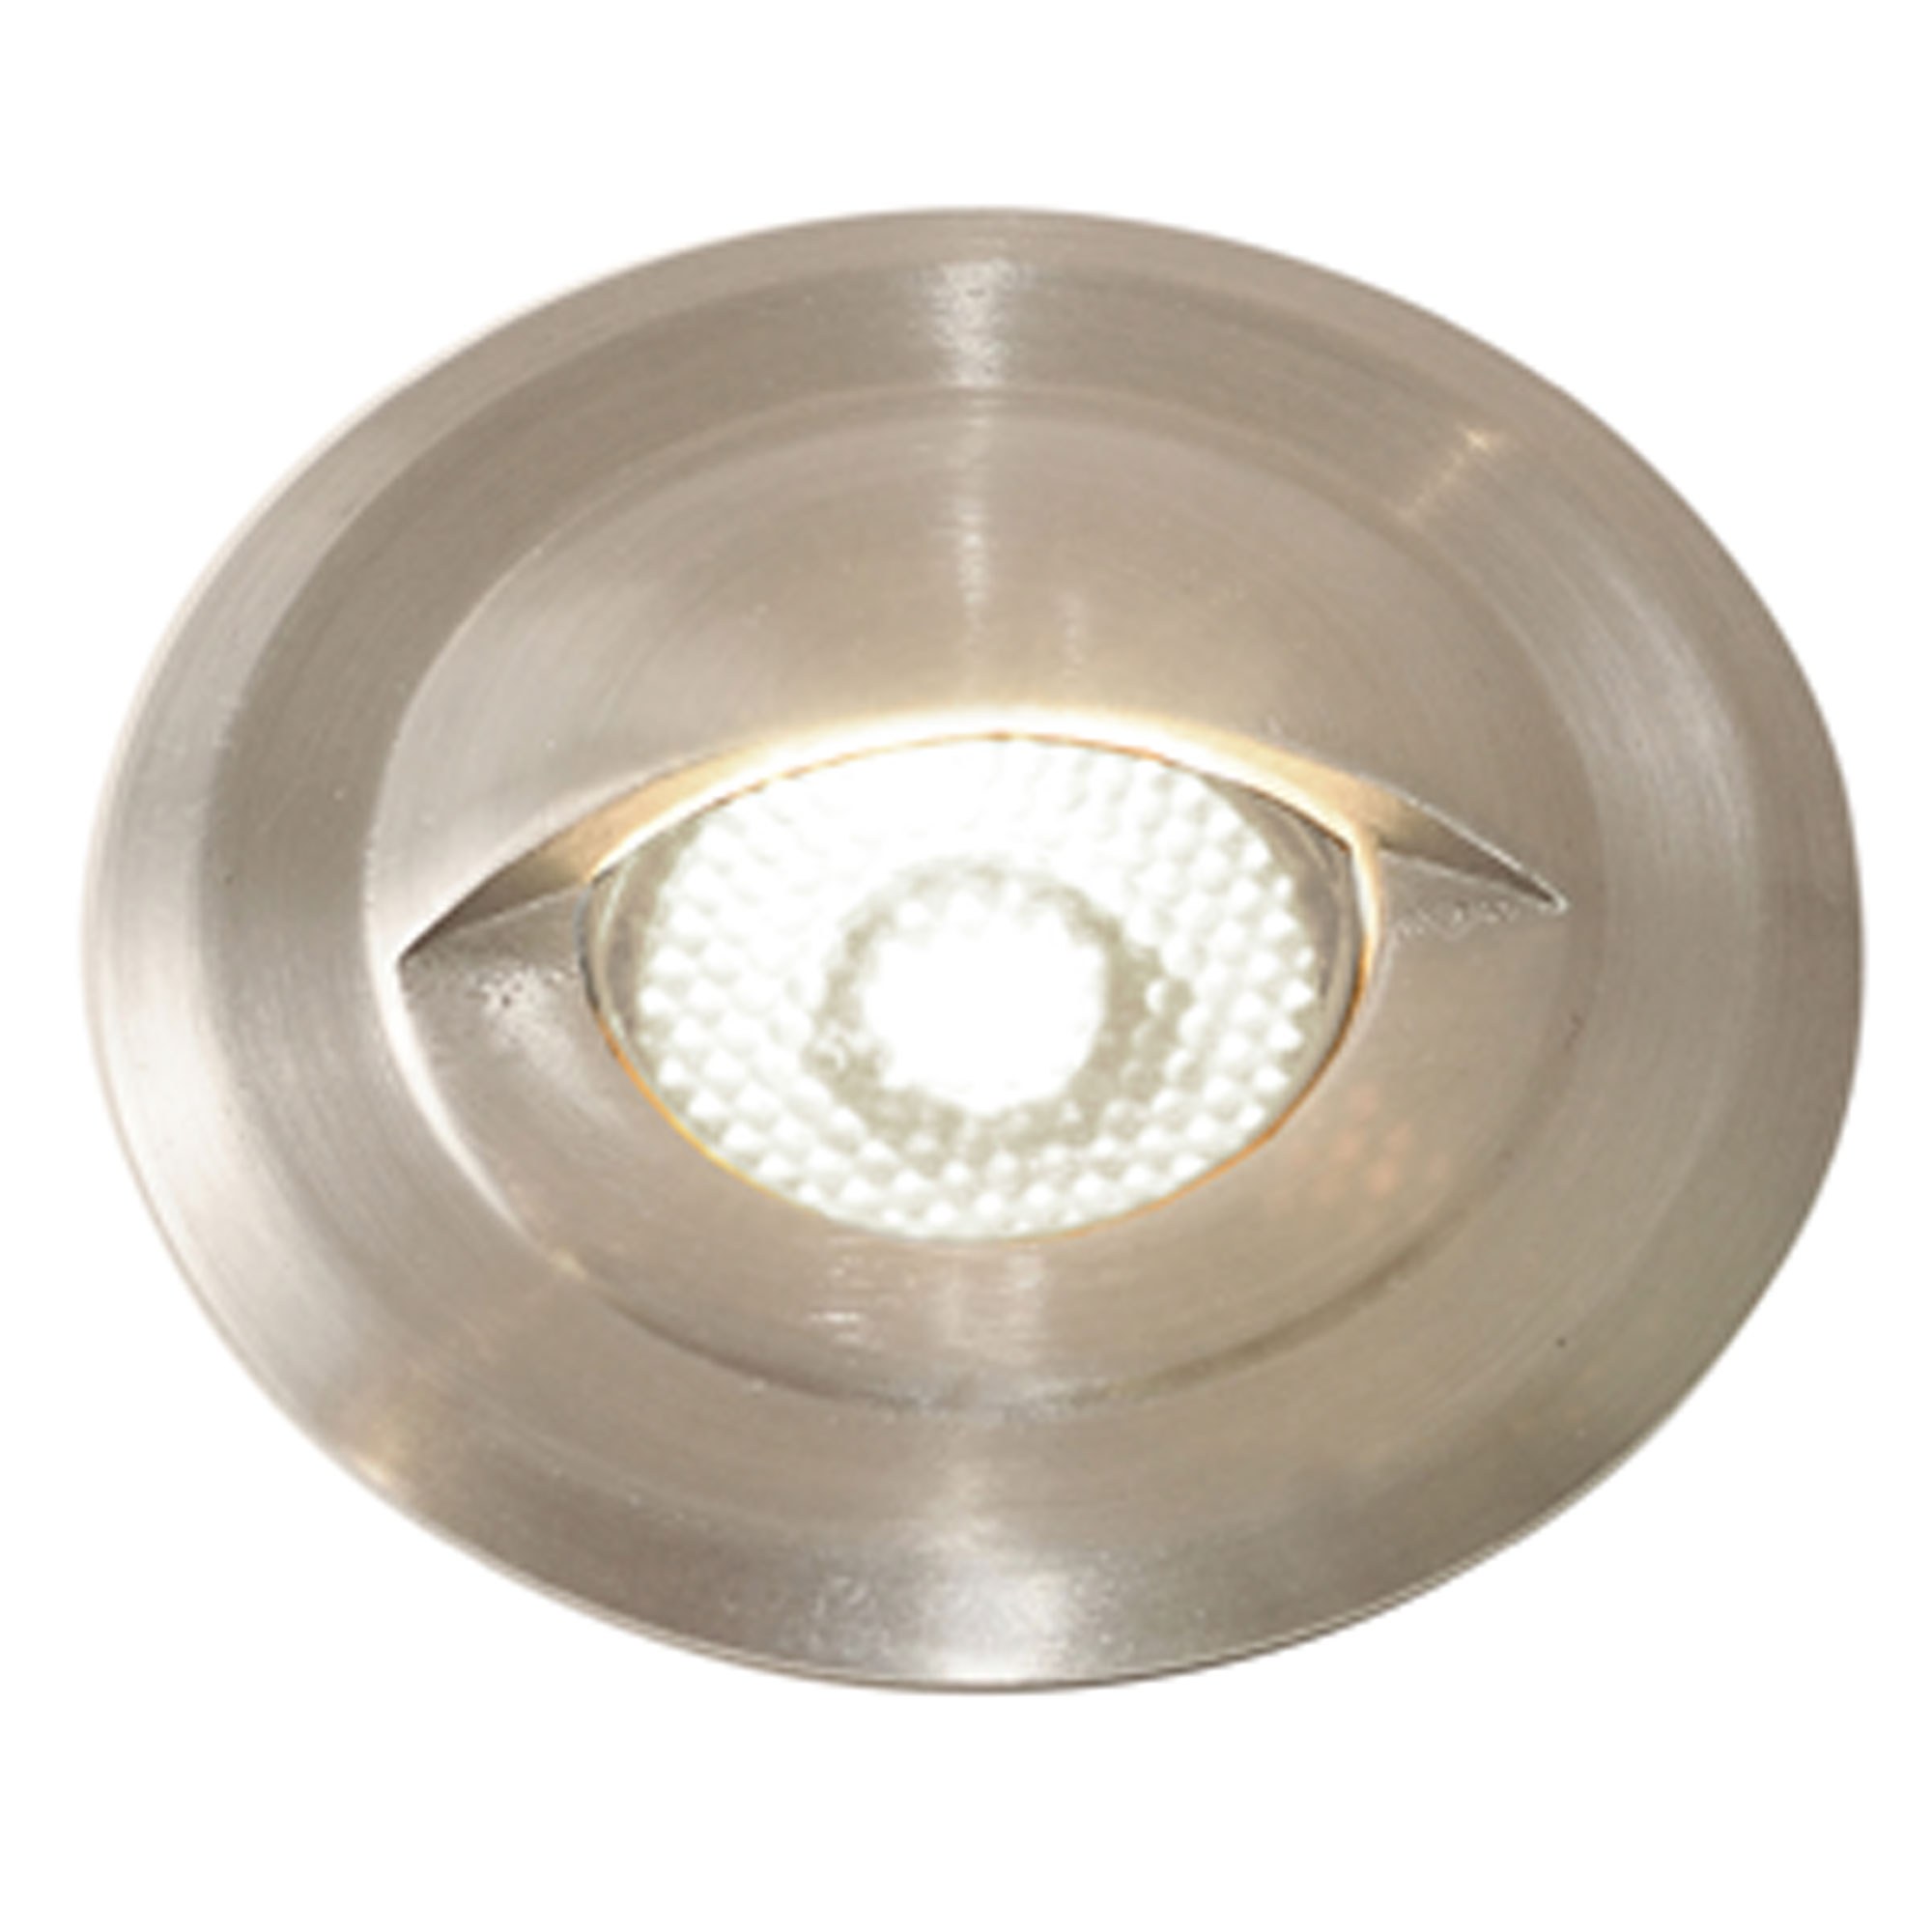 Miniport led eyelid trim step light by pureedge lighting mport download image miniport led aloadofball Image collections